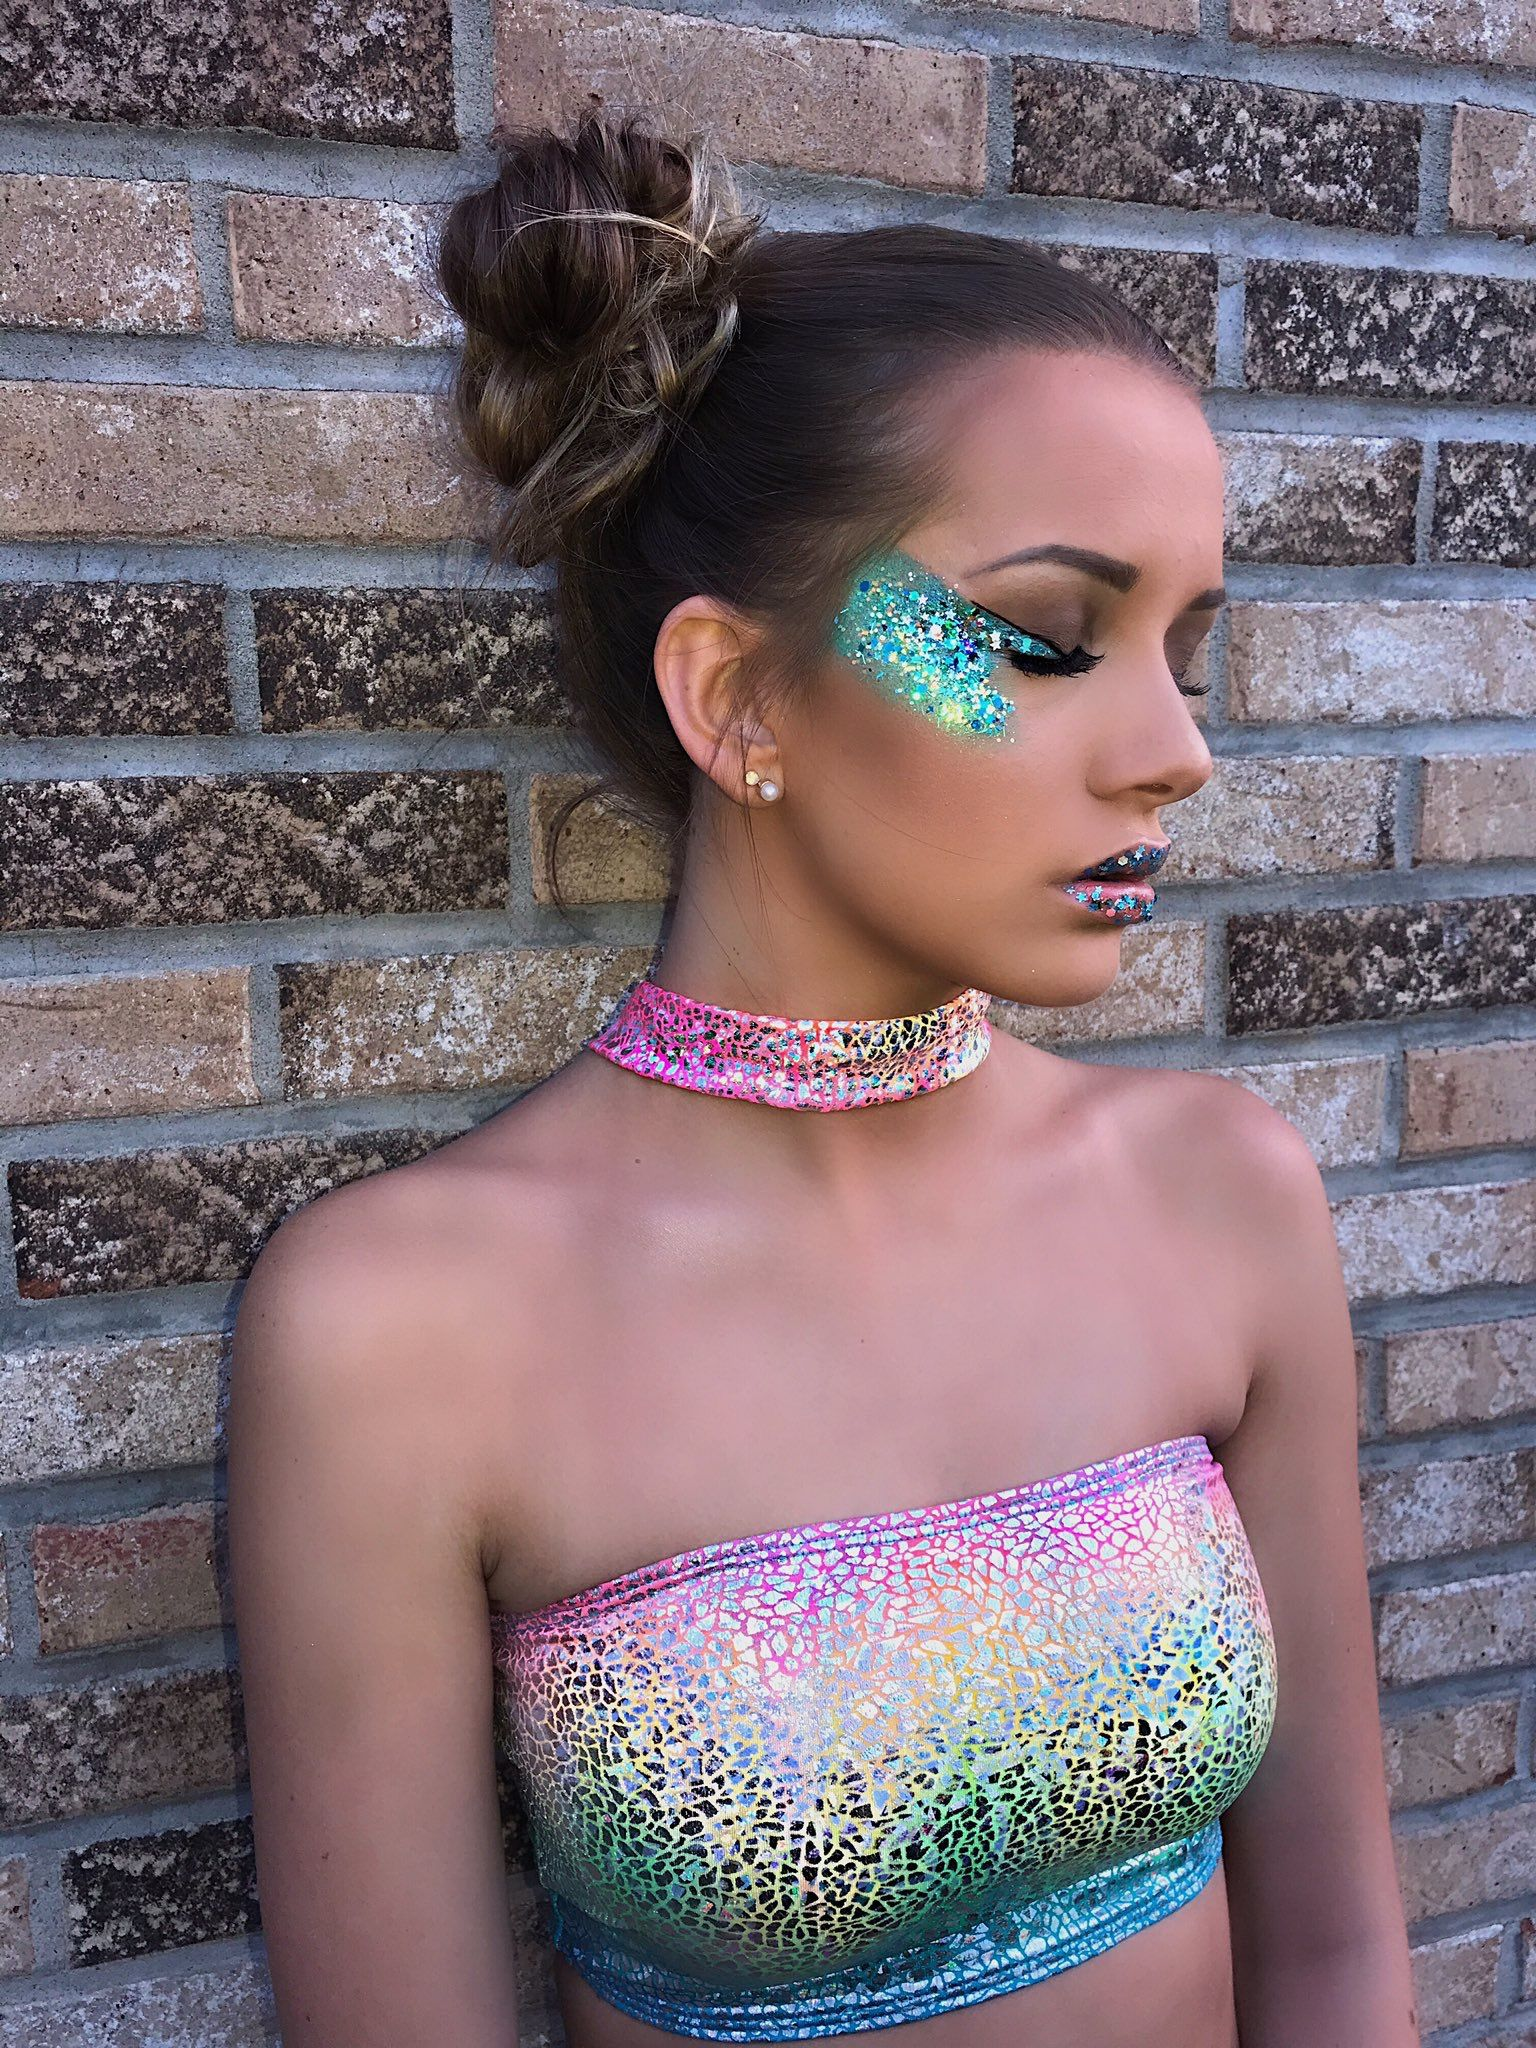 makeup | Costume ideasss | Pinterest | Comidas sanas, Decoracion ...